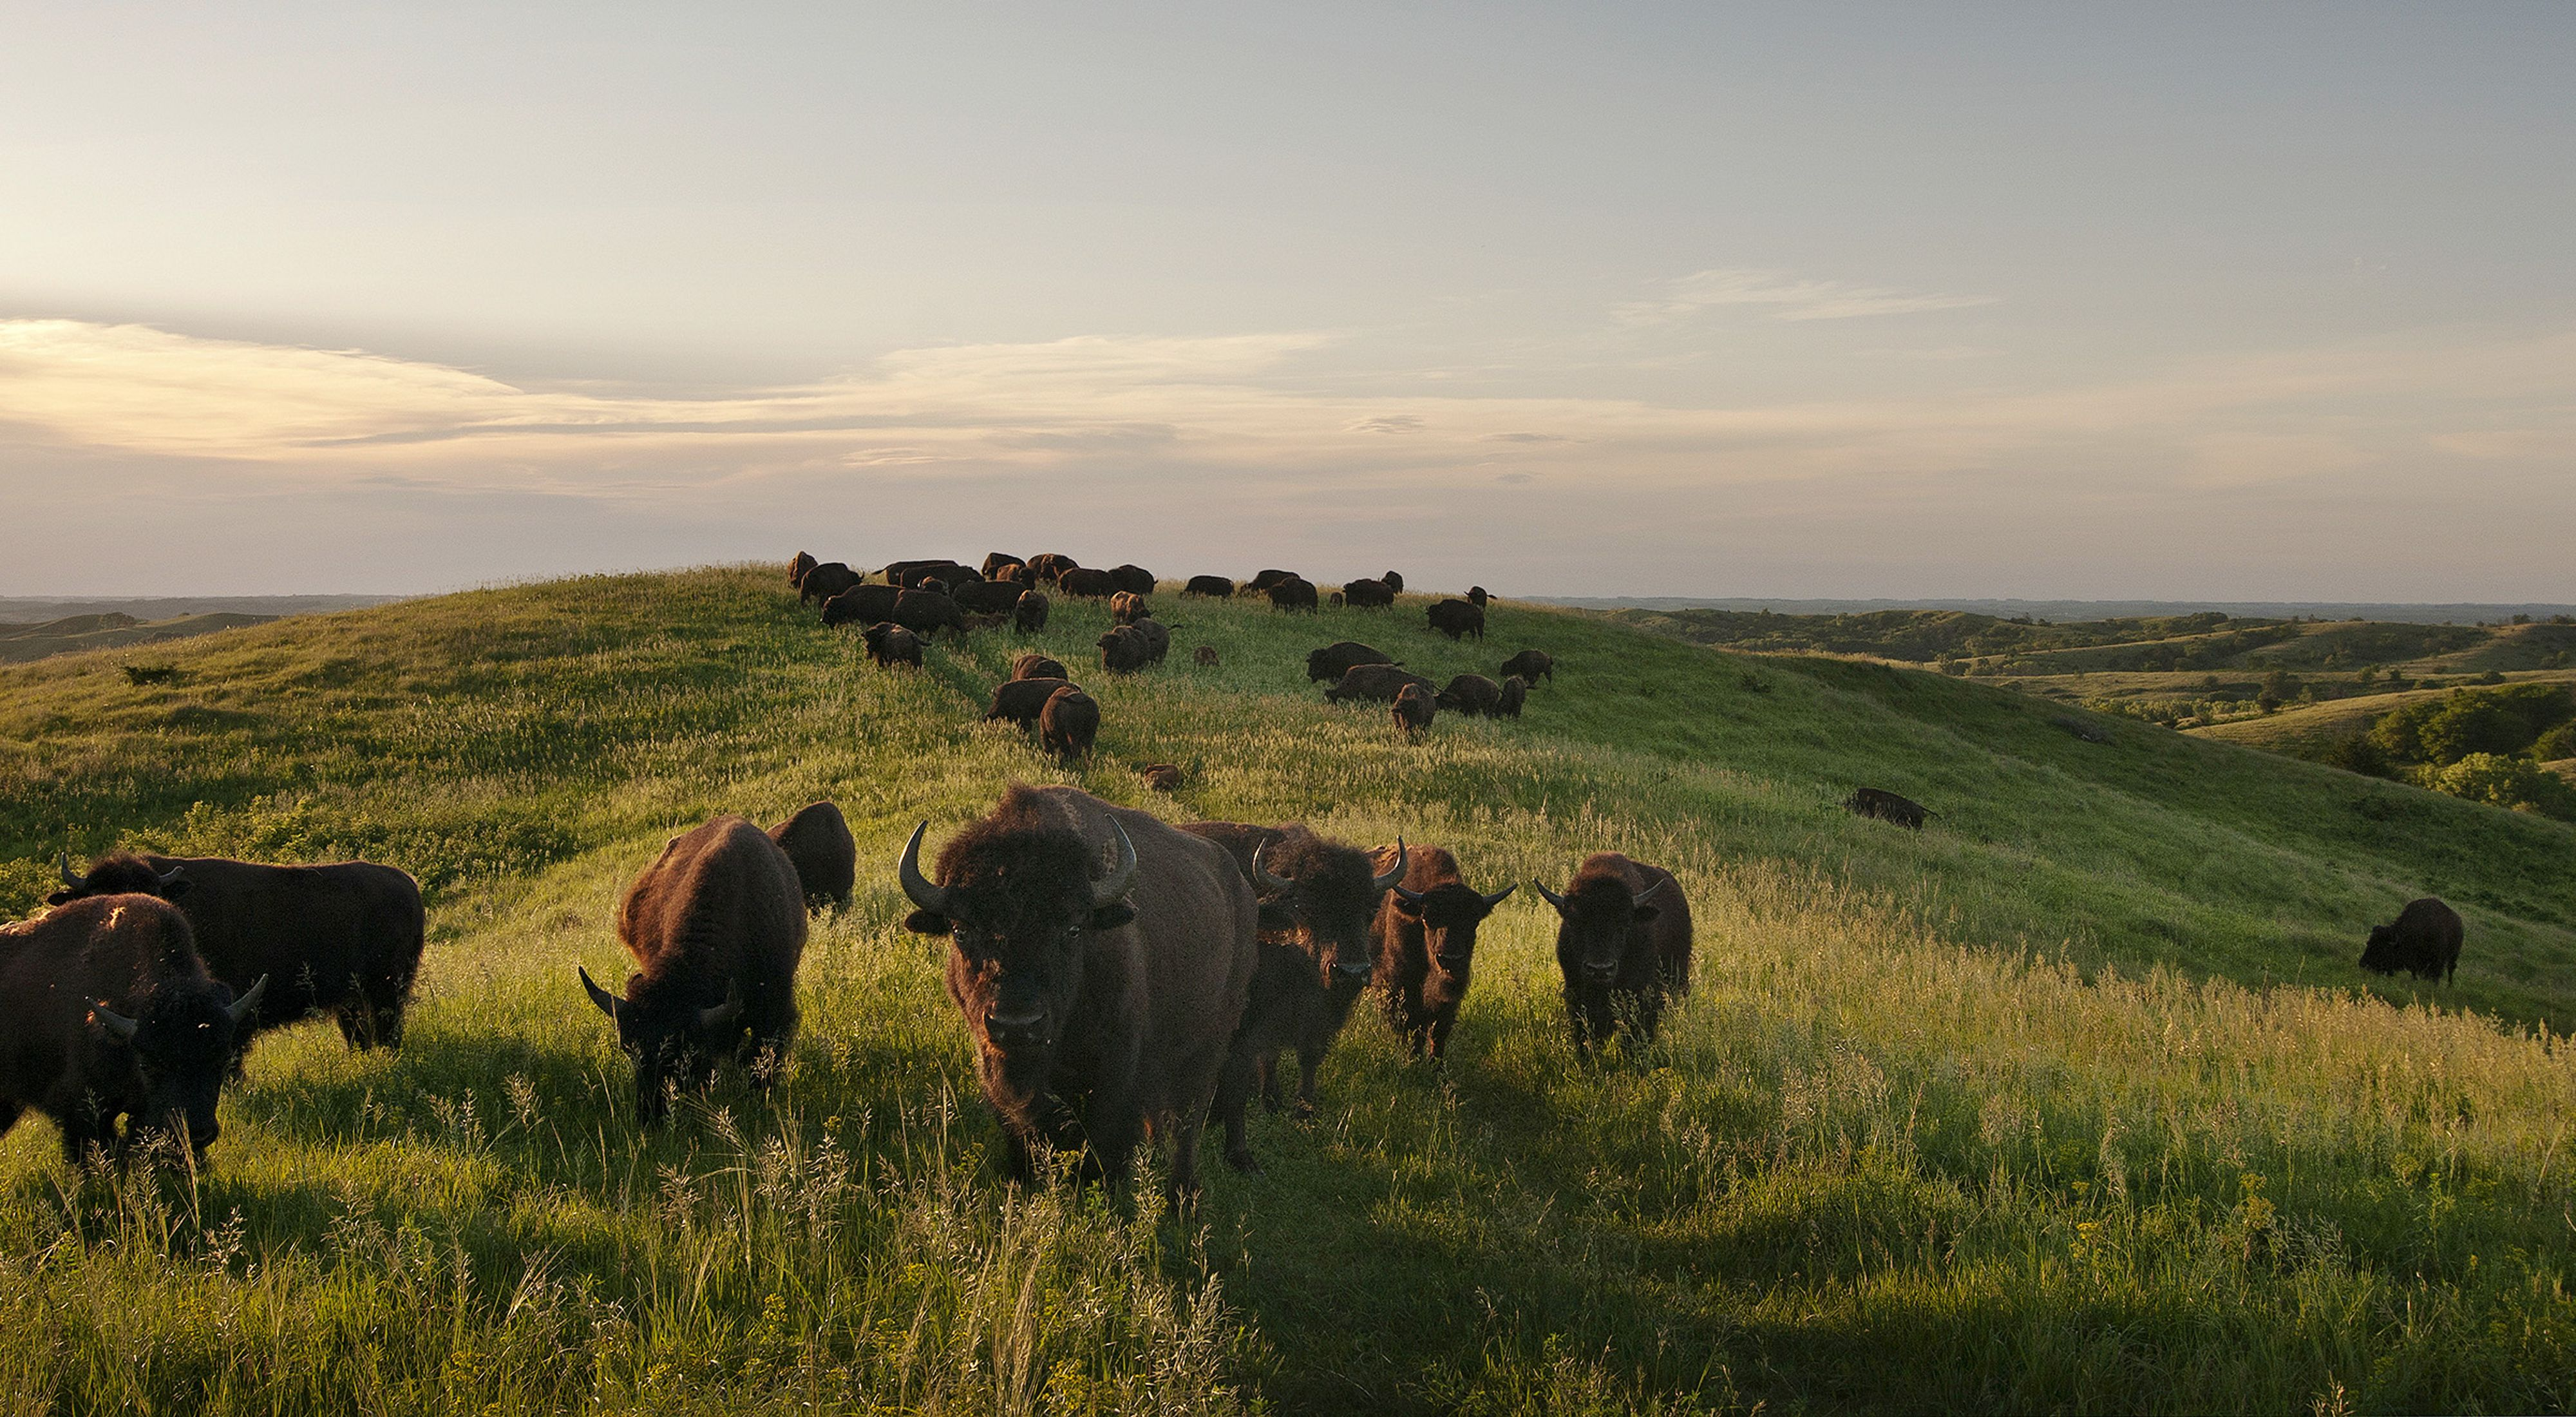 Bison at The Nature Conservancy's Broken Kettle Grassland Preserve in the Loess Hills of Iowa.